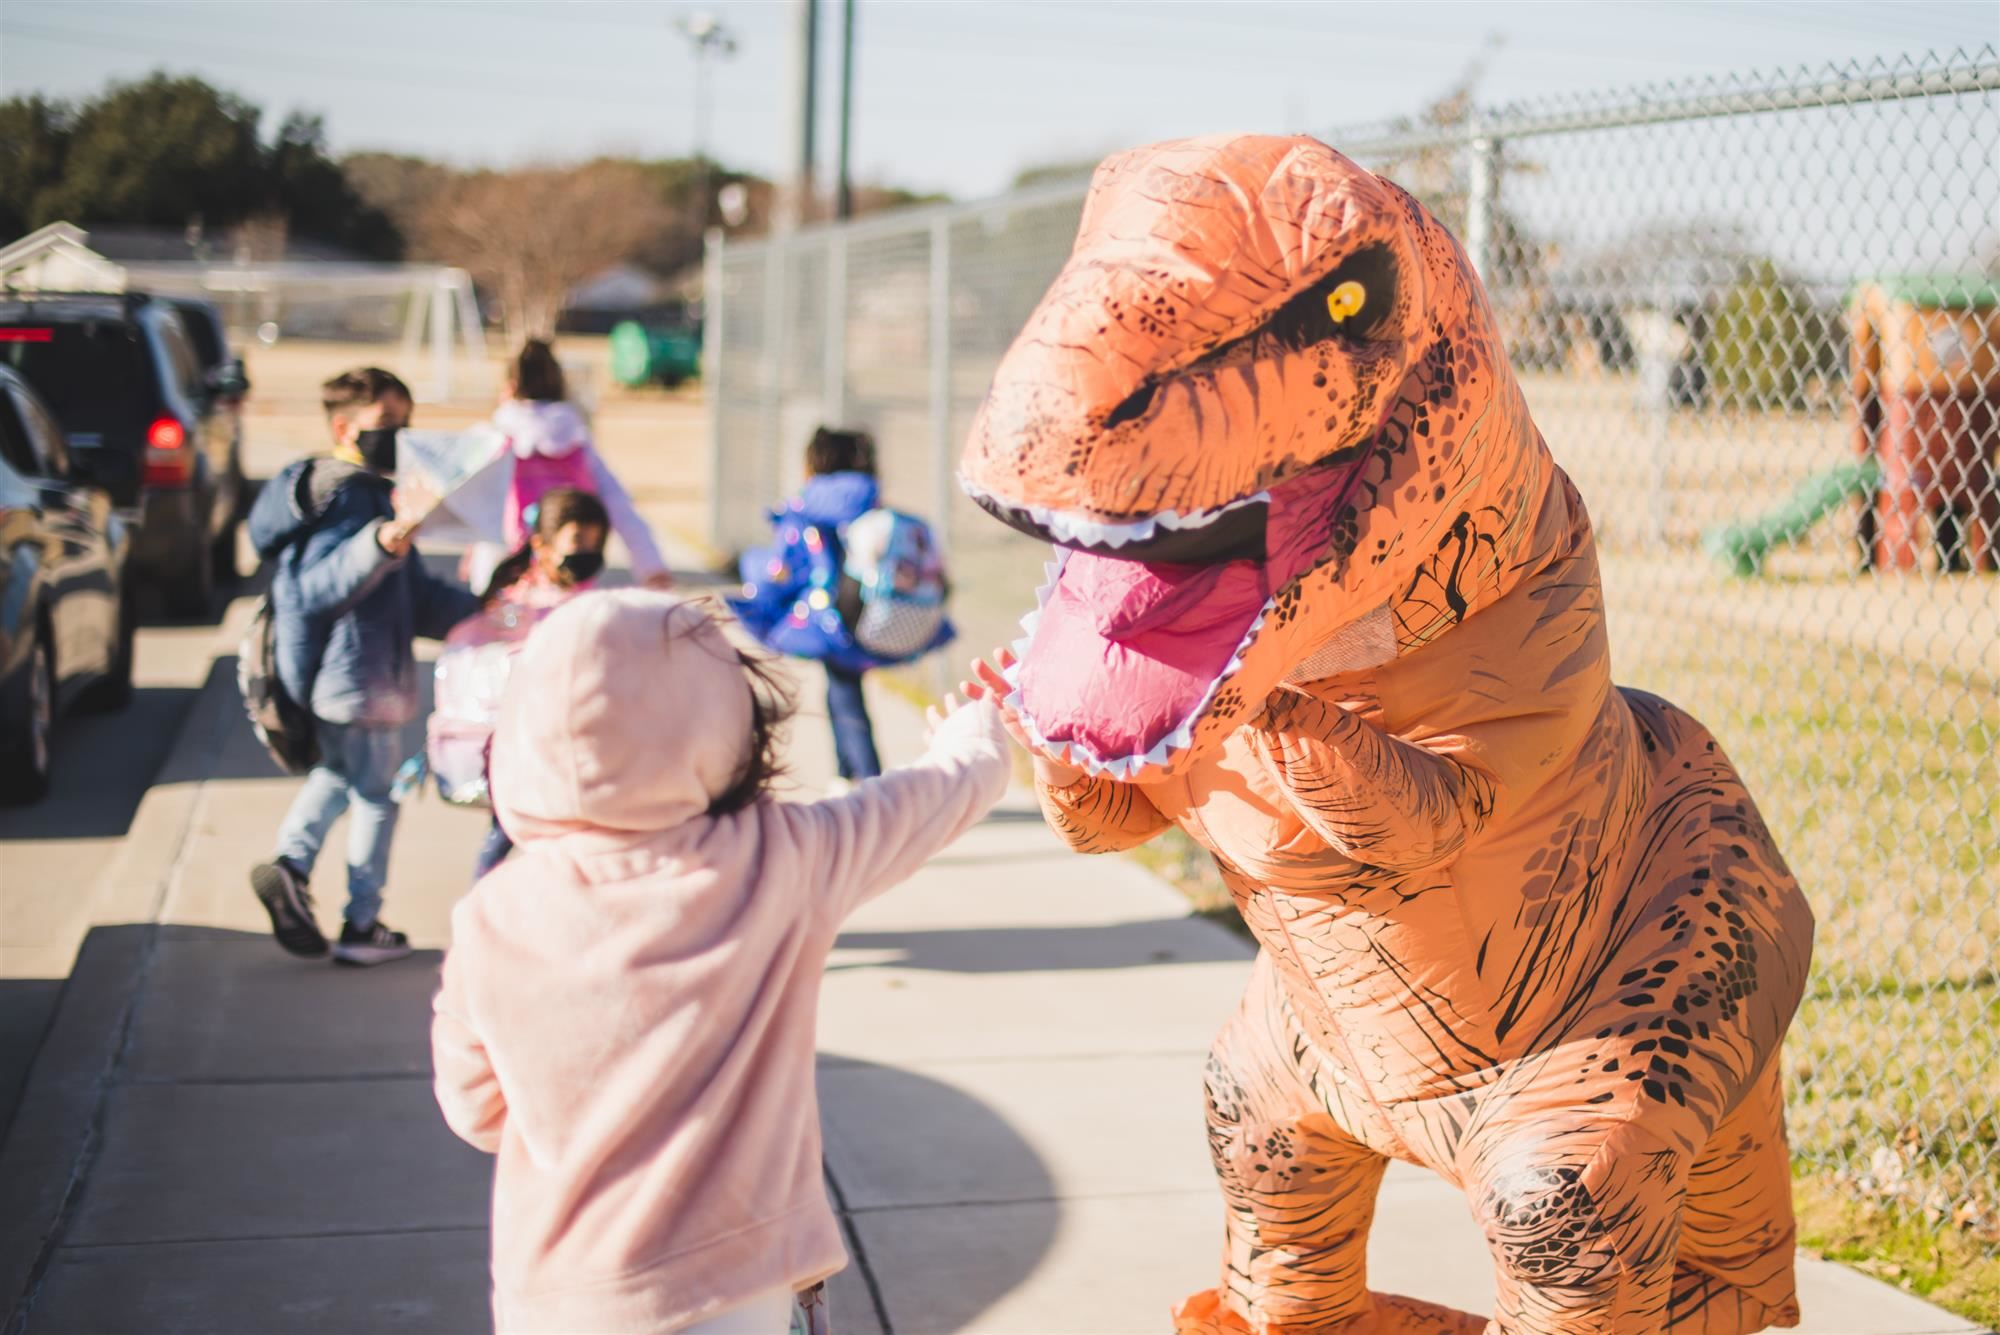 Educator in dinosaur costume waves to student